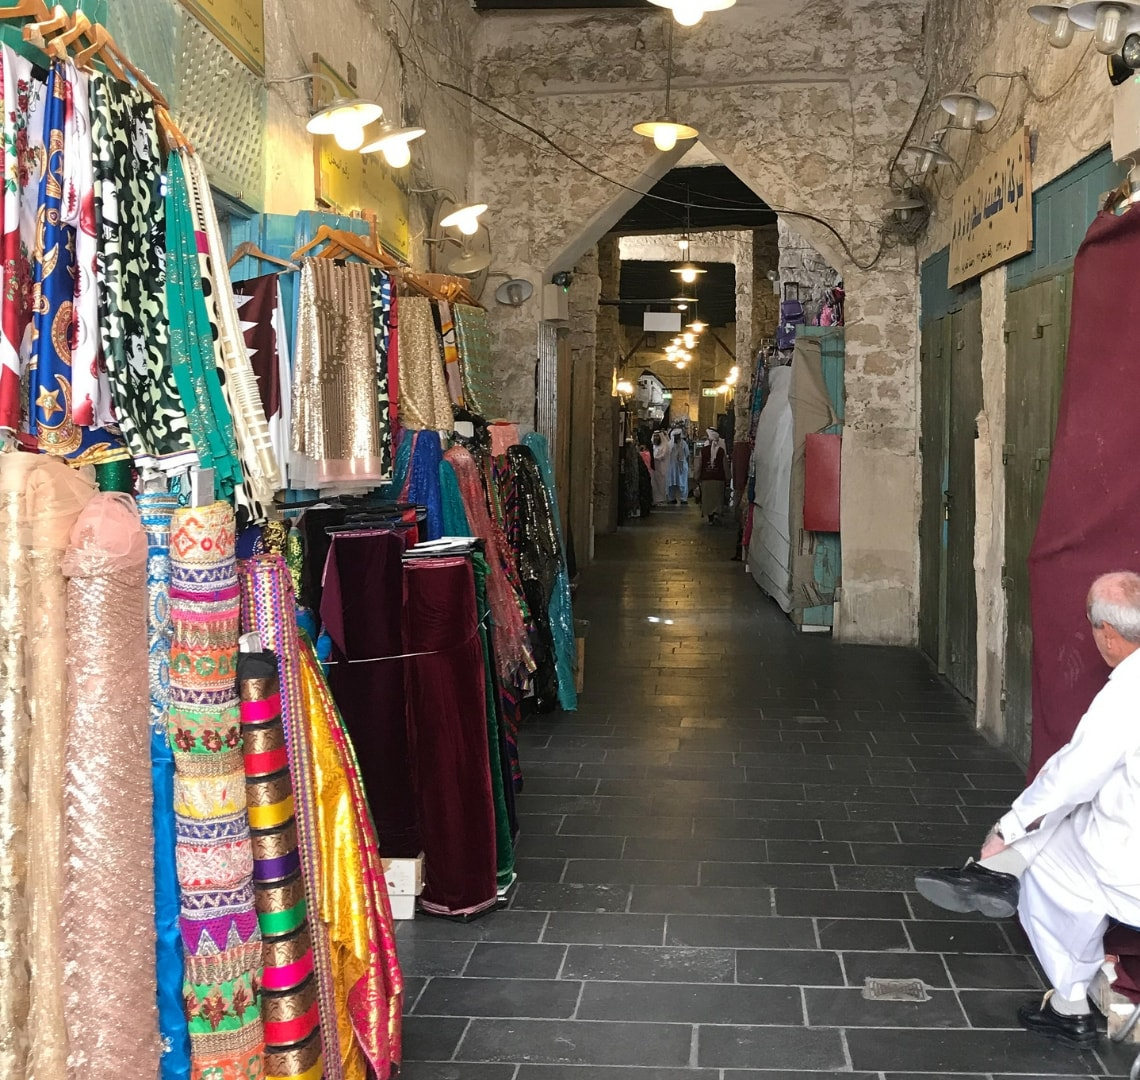 11 incredible things to do in Qatar - one of the corridors in the souq